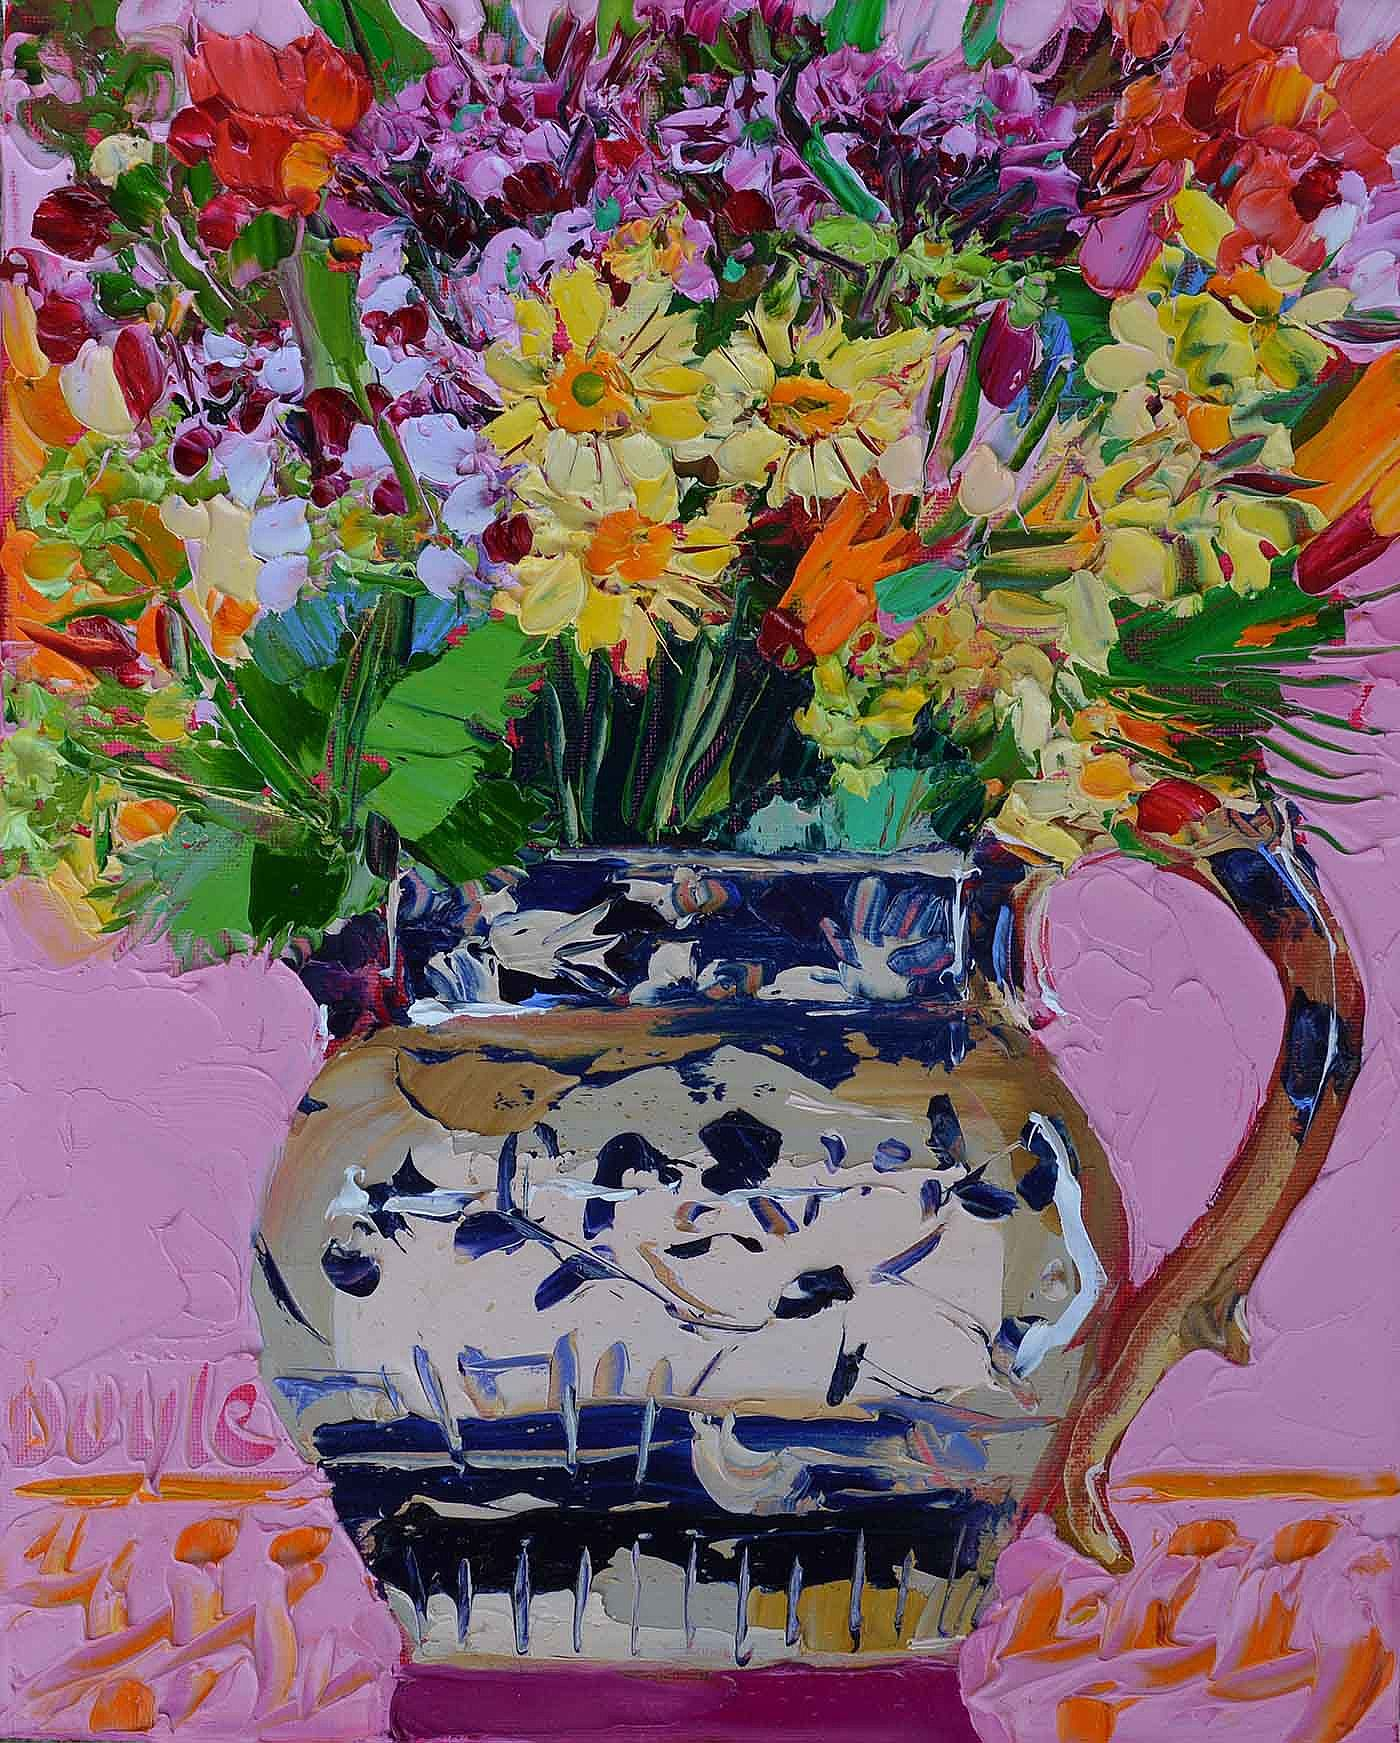 Lucy Doyle - Pots and Posies 5